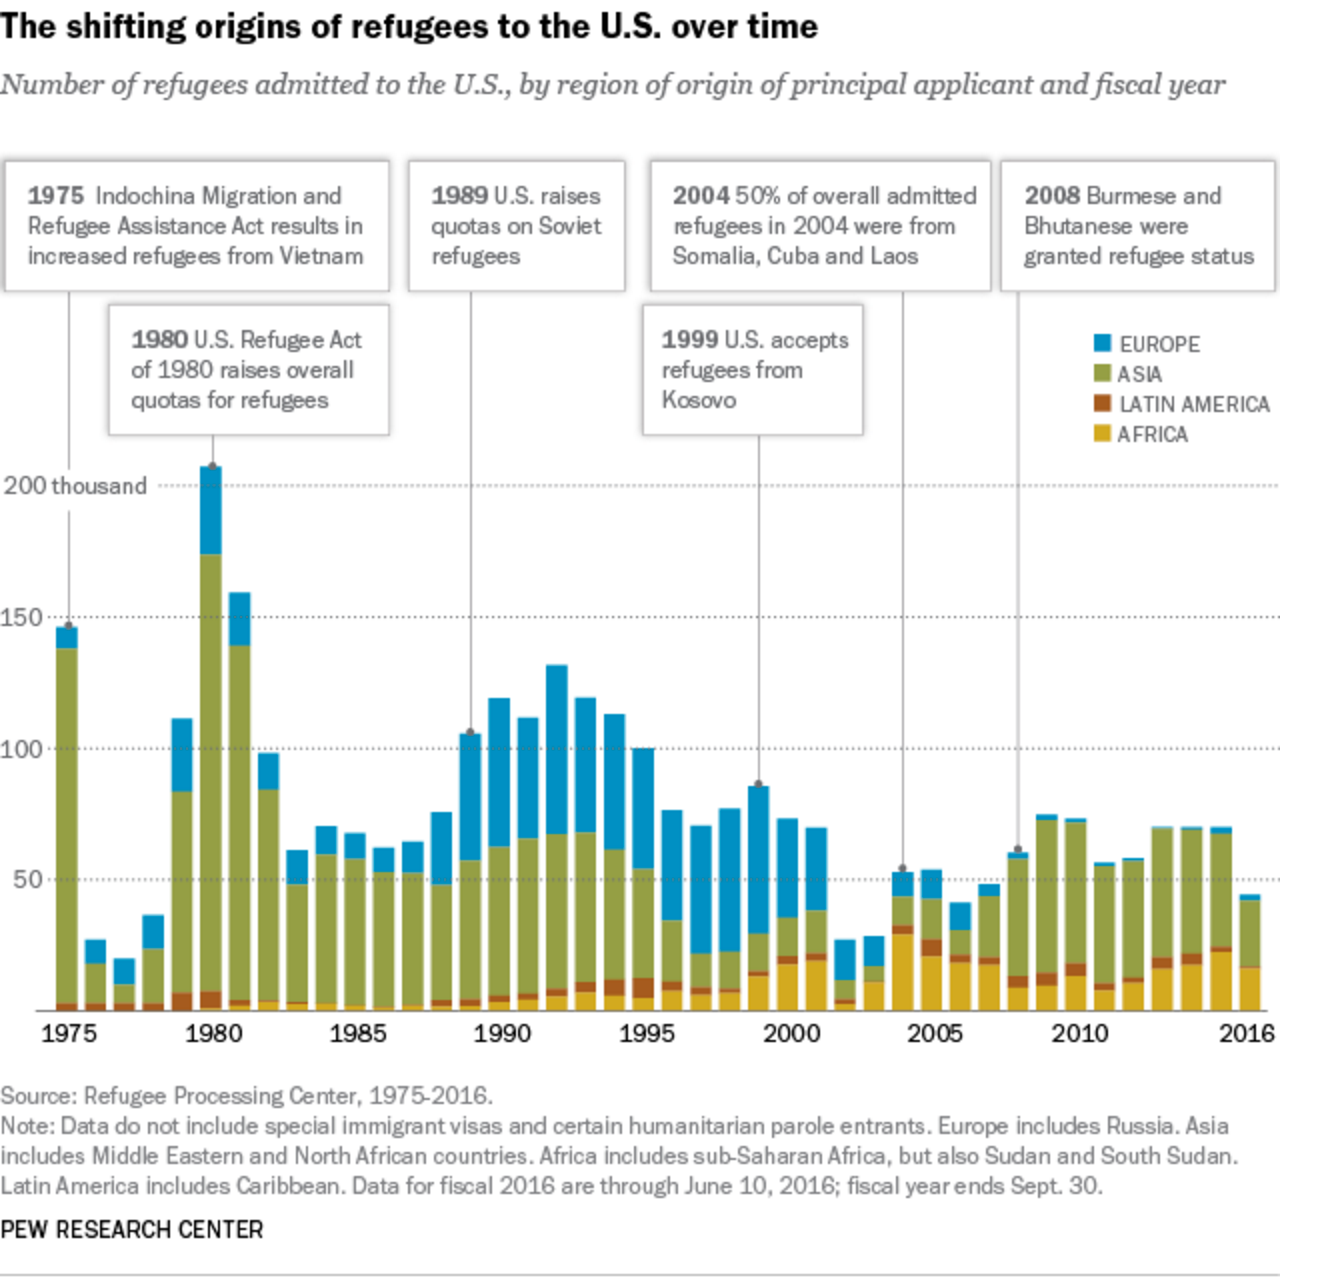 The shifting origins of refugees to the US over time- the number of refugees admitted to the U.S